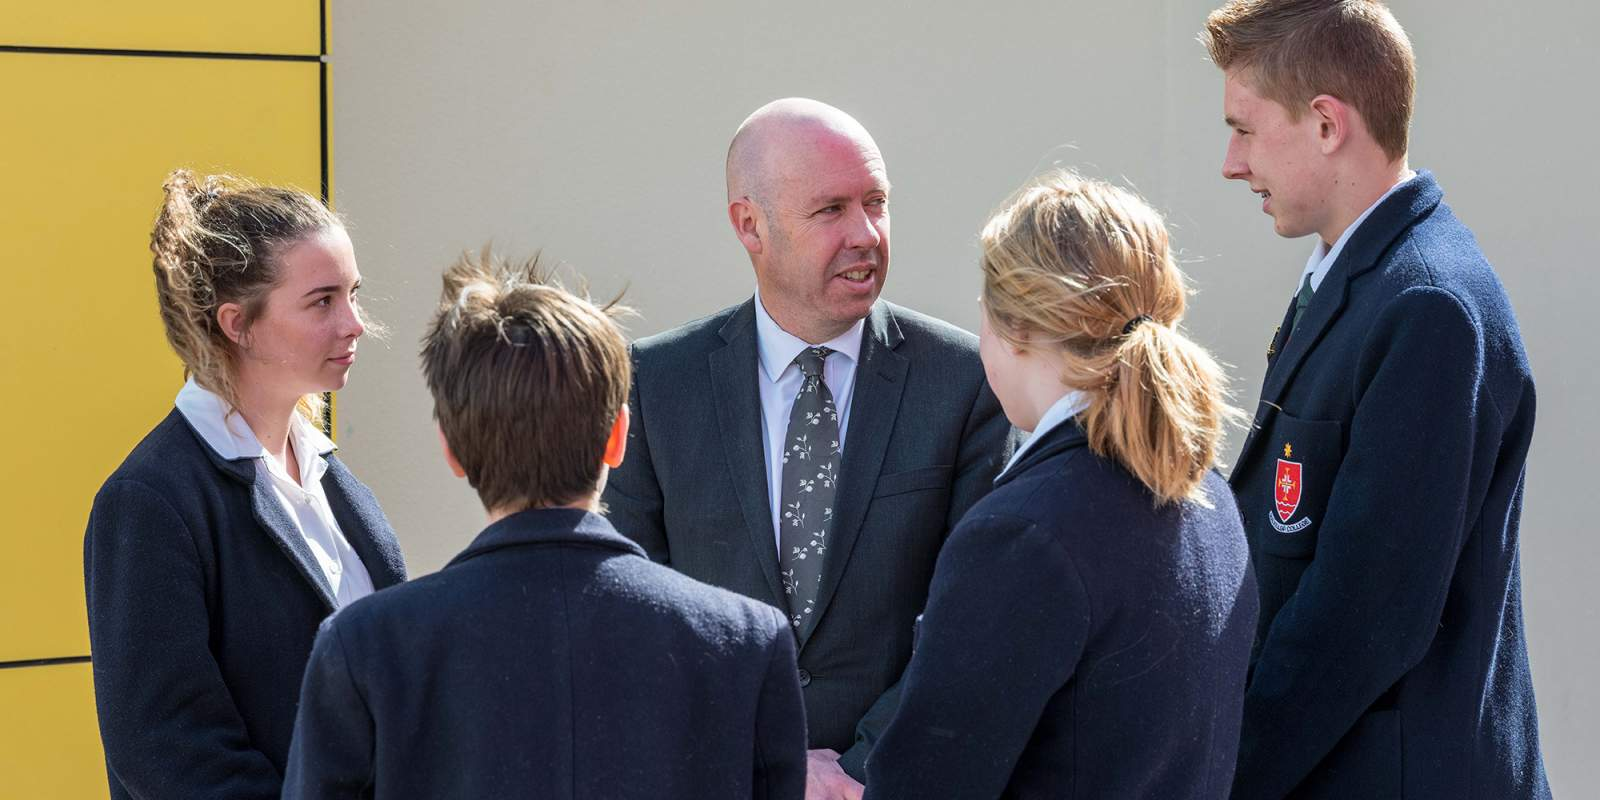 Principal Eamonn Pollard talking to students